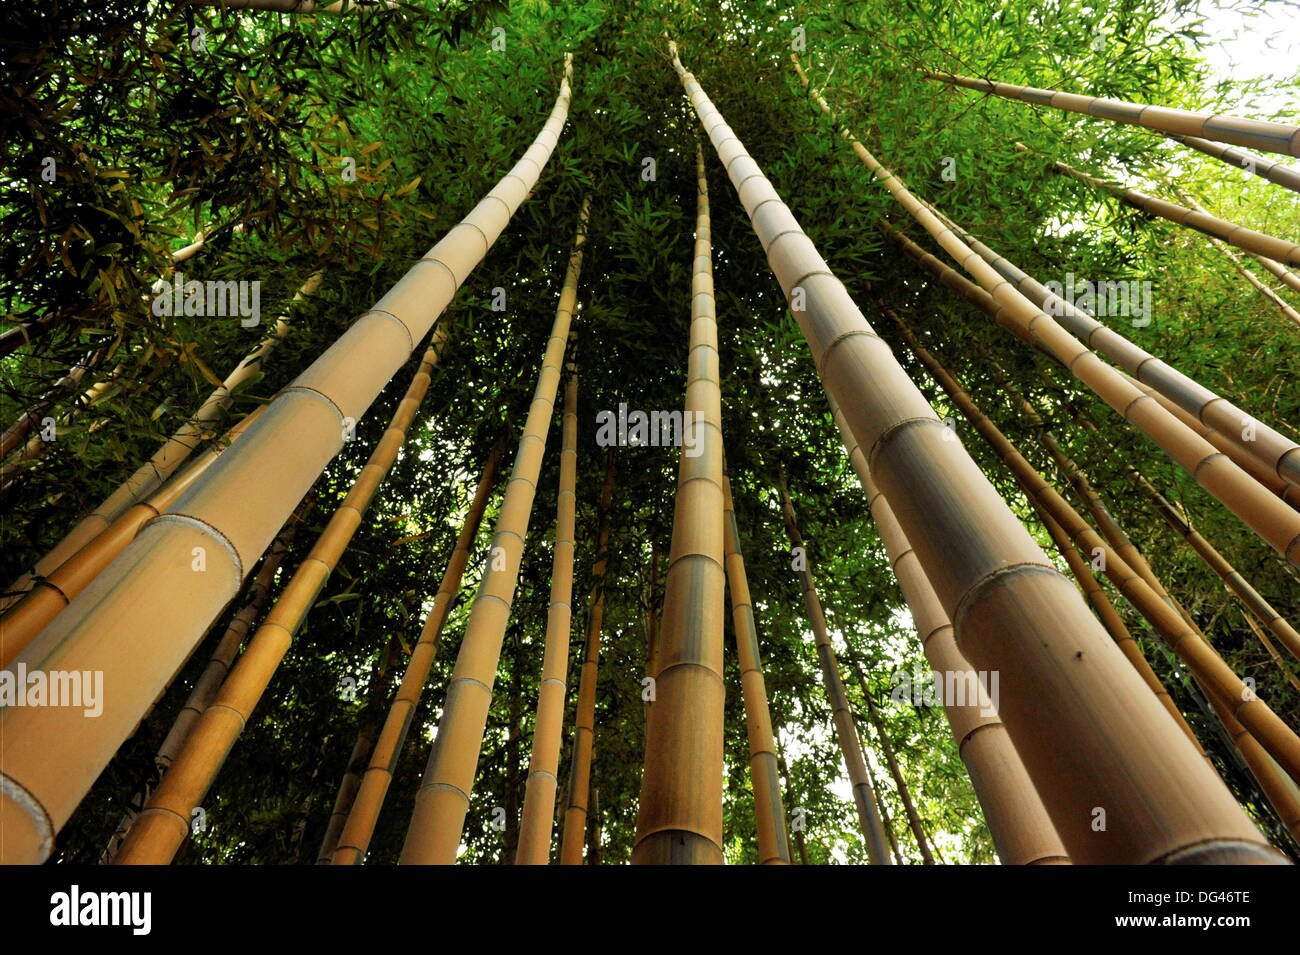 Bamboo Canes Stock Photos & Bamboo Canes Stock Images